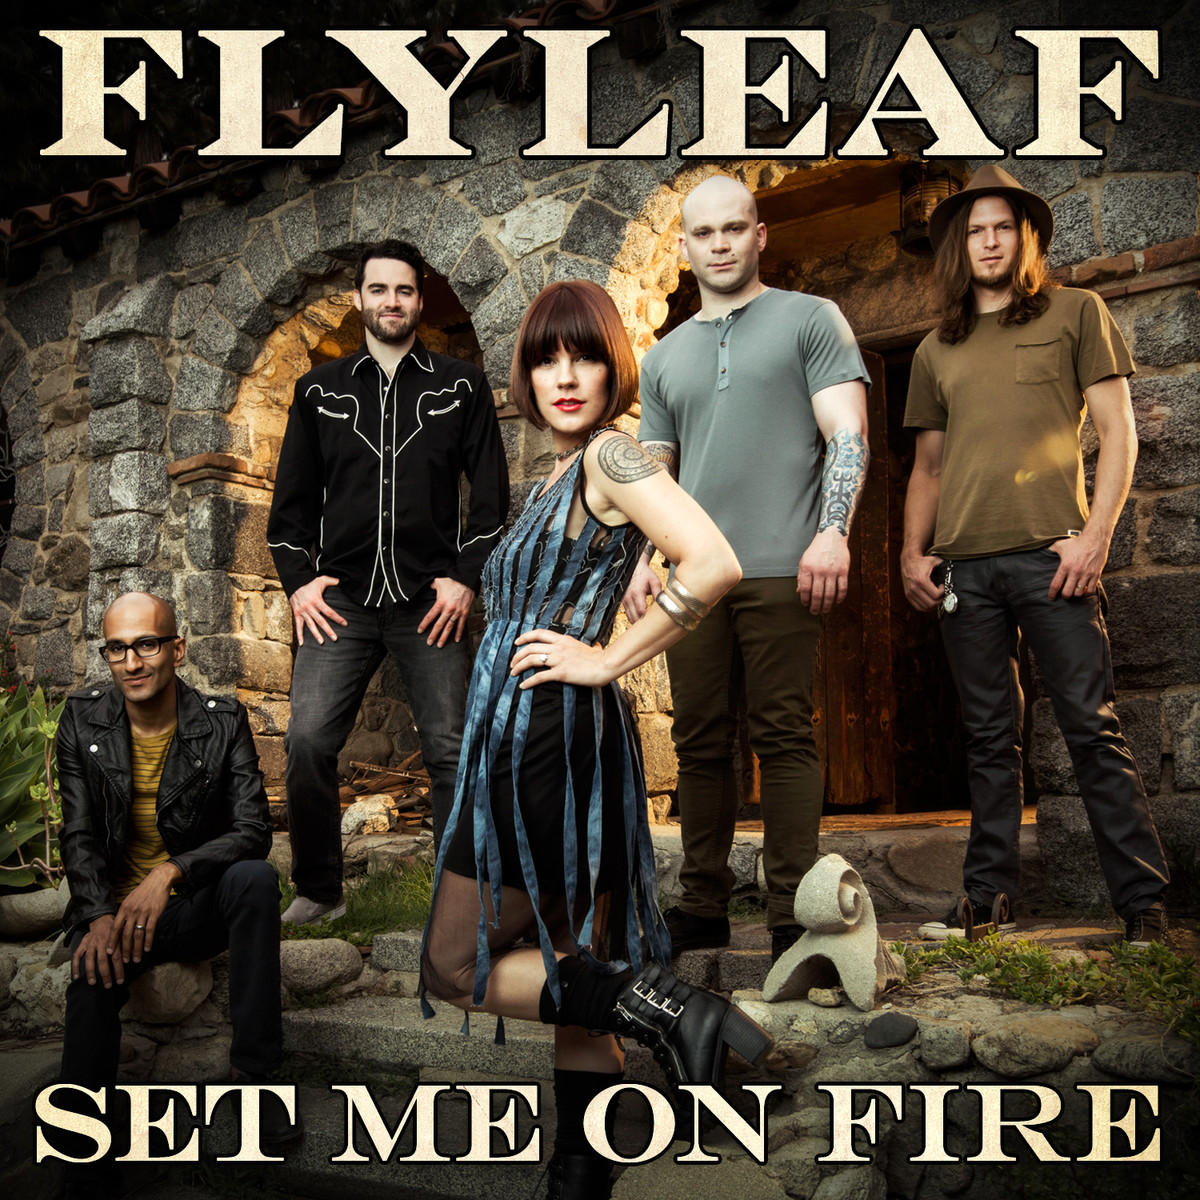 Download Flyleaf - Set Me On Fire 2014 MP3 Música